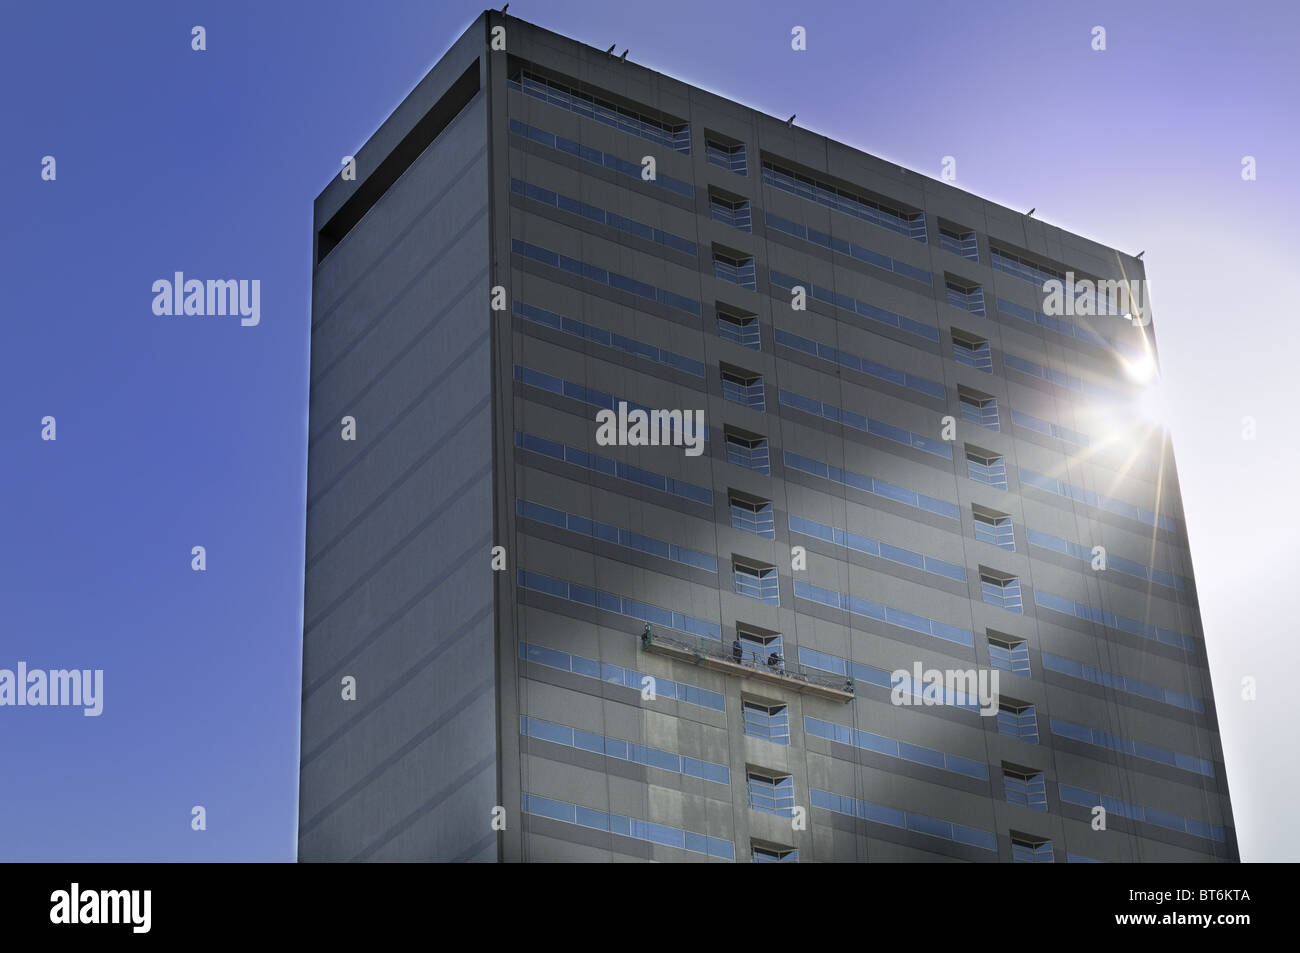 Window washers working - Stock Image